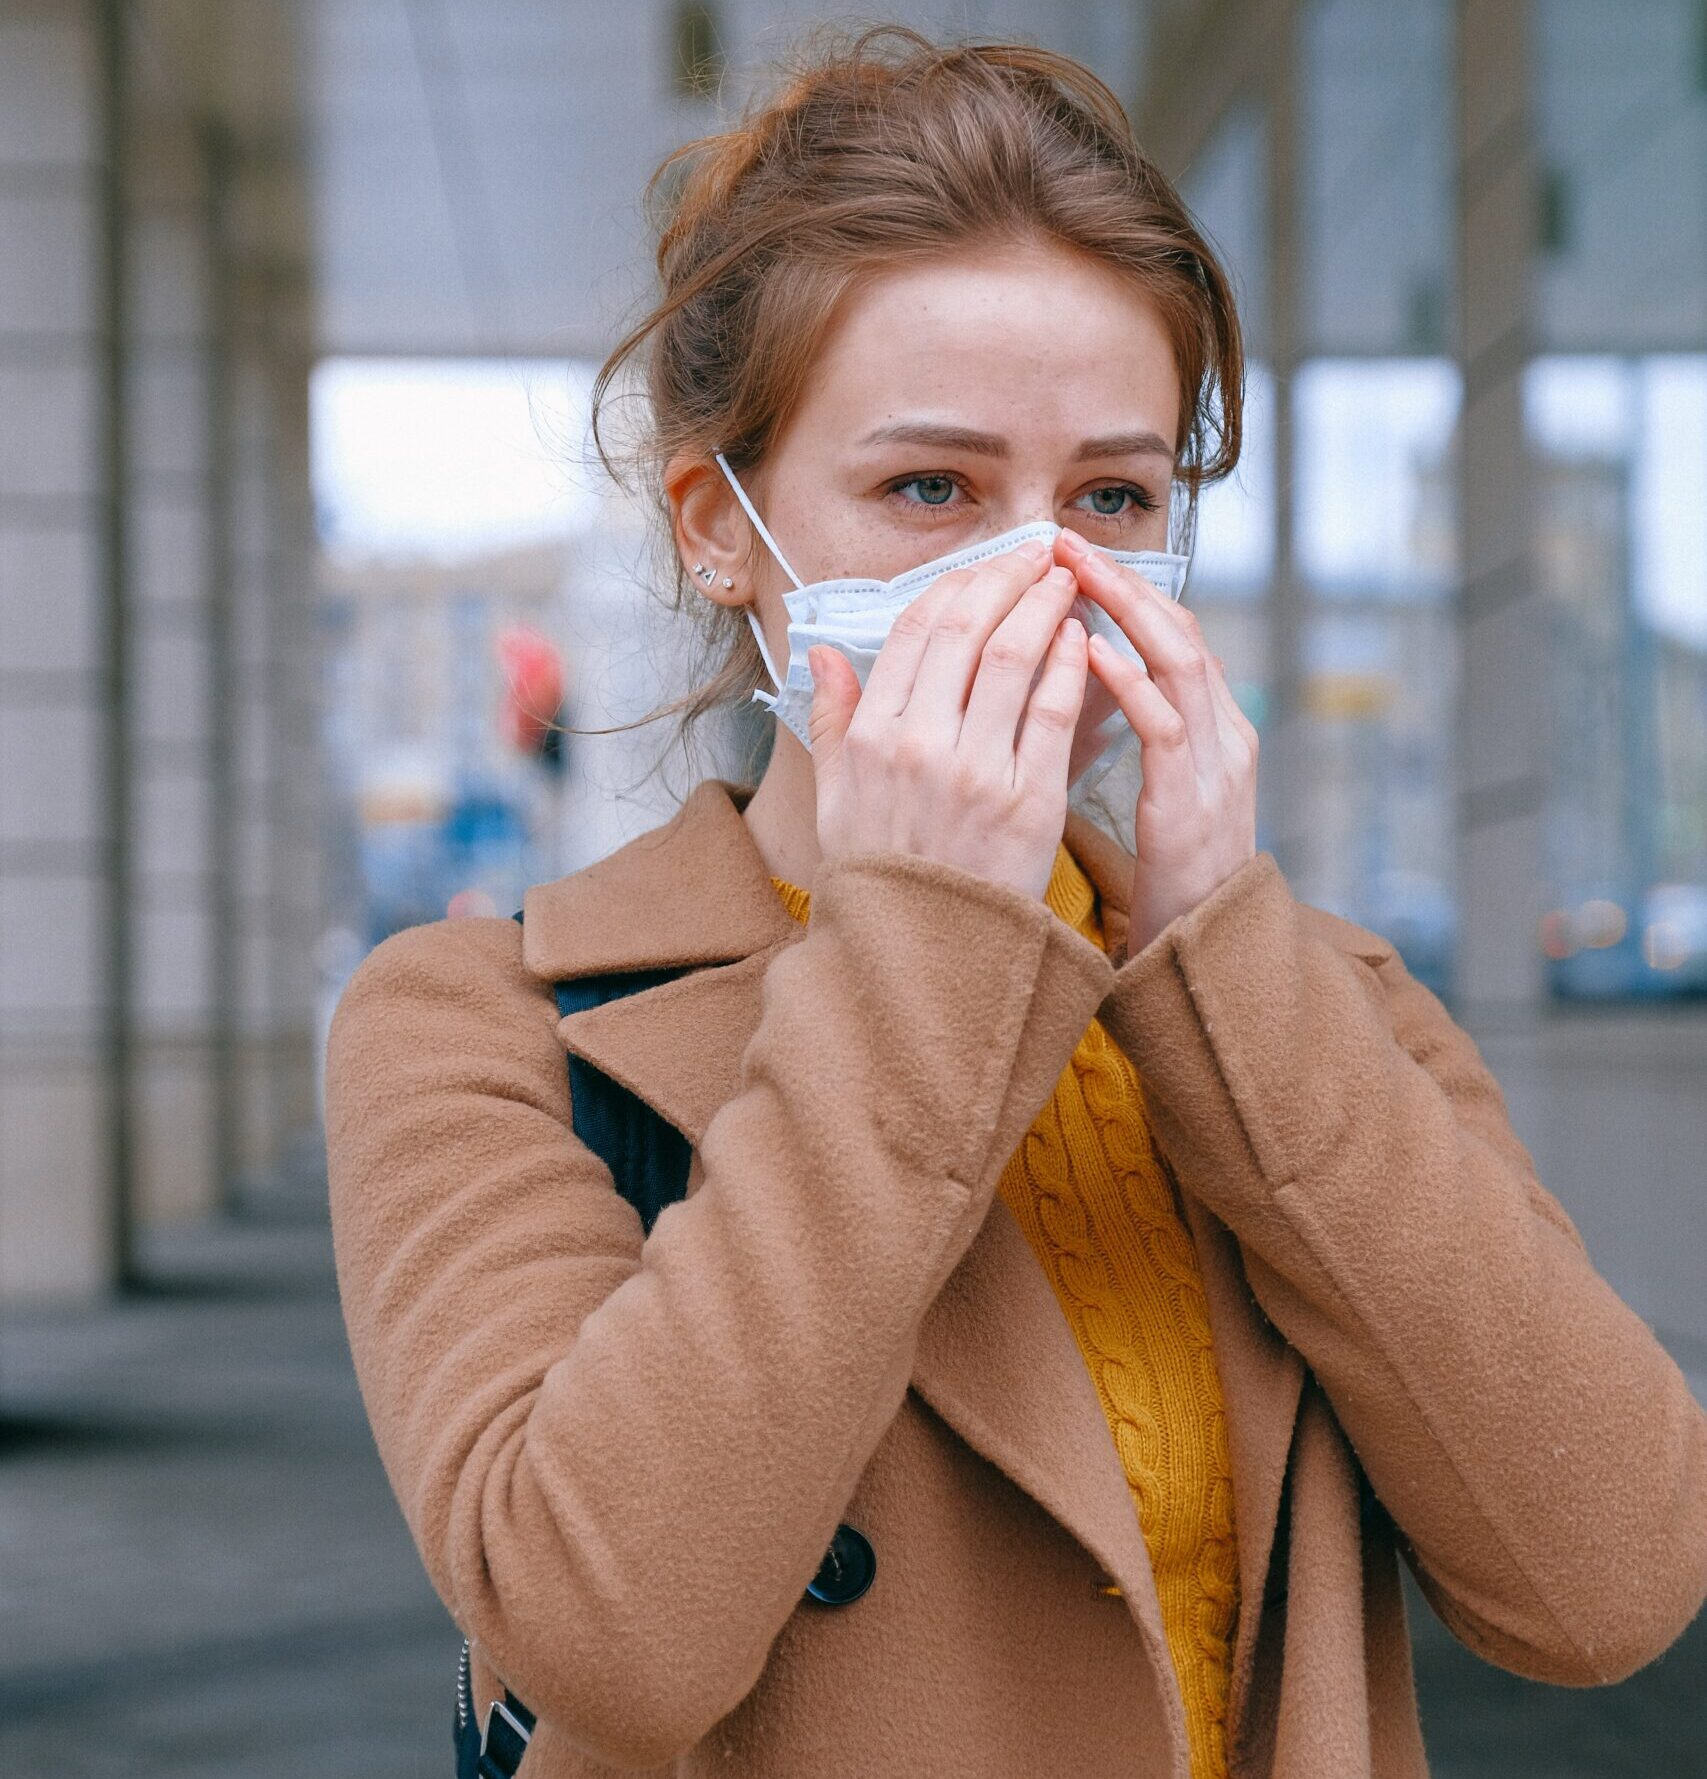 covid-19 updates, coronavirus updates, covid-19 face covering, covid mask, face mask required for covid-19, why do I have to wear a mask for covid-19, do I have to wear a mask in king county, do I have to wear a mask because of covid-19, covid-19 mask, facemask covid,covid-19